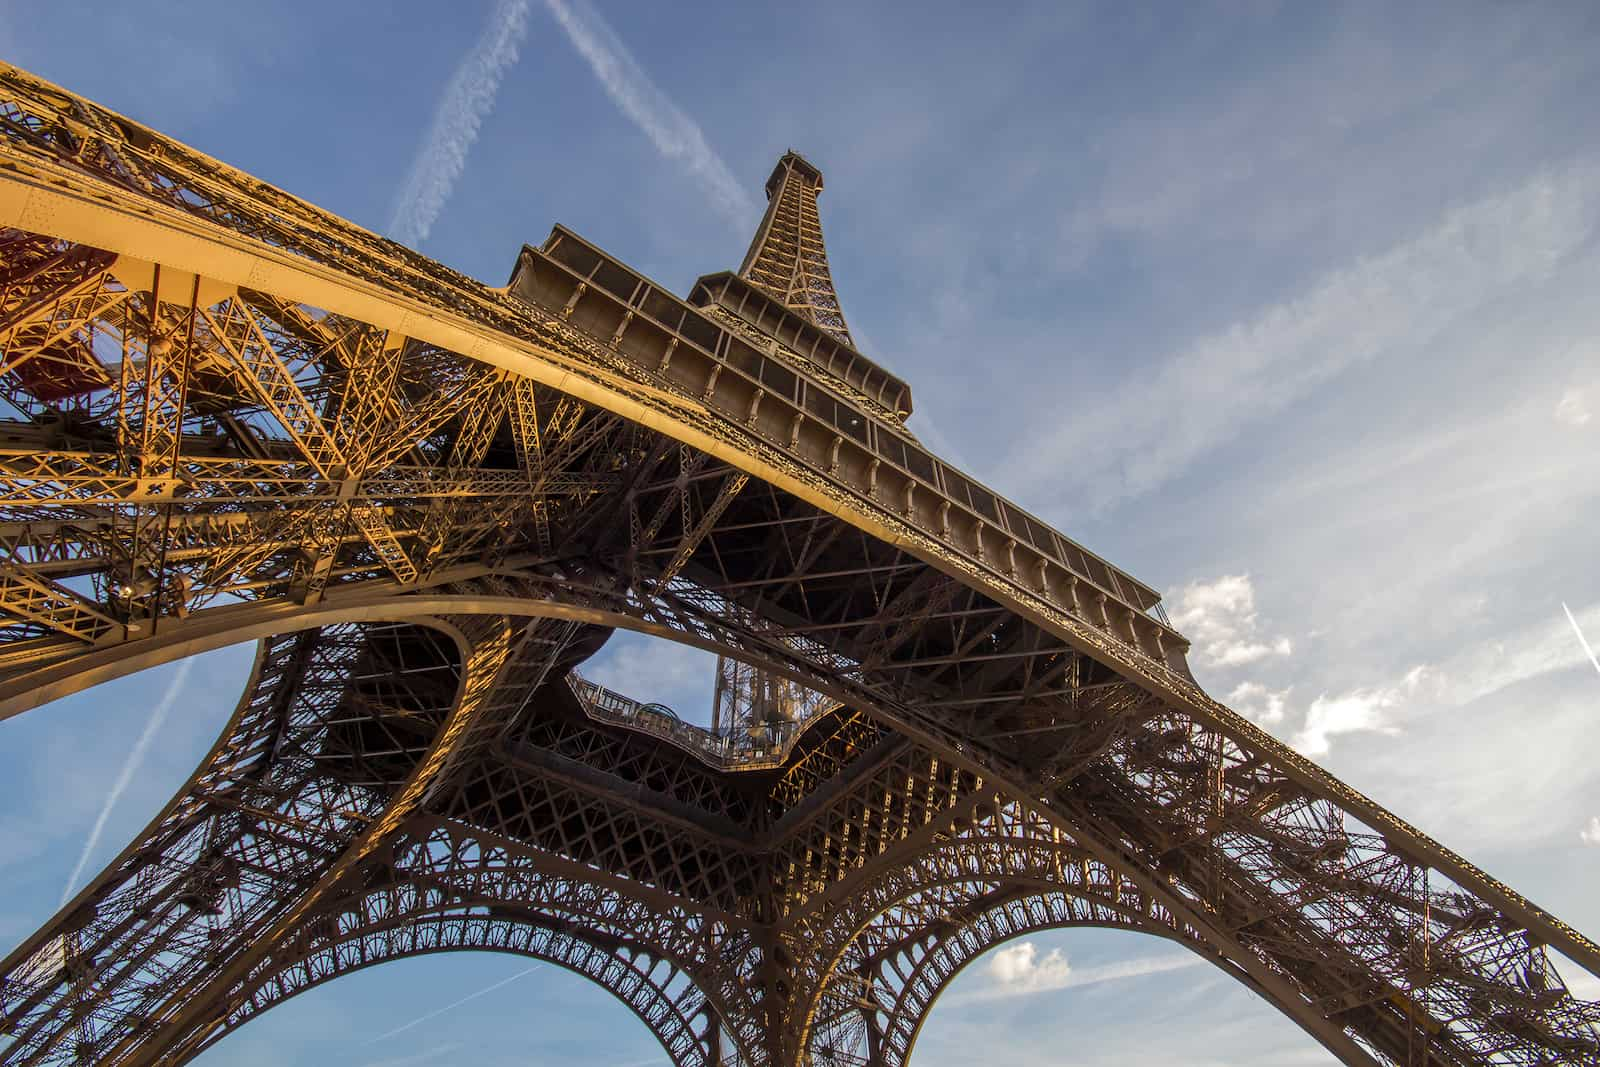 21 Parisian things: Cultural guide on the top things to know about Parisians